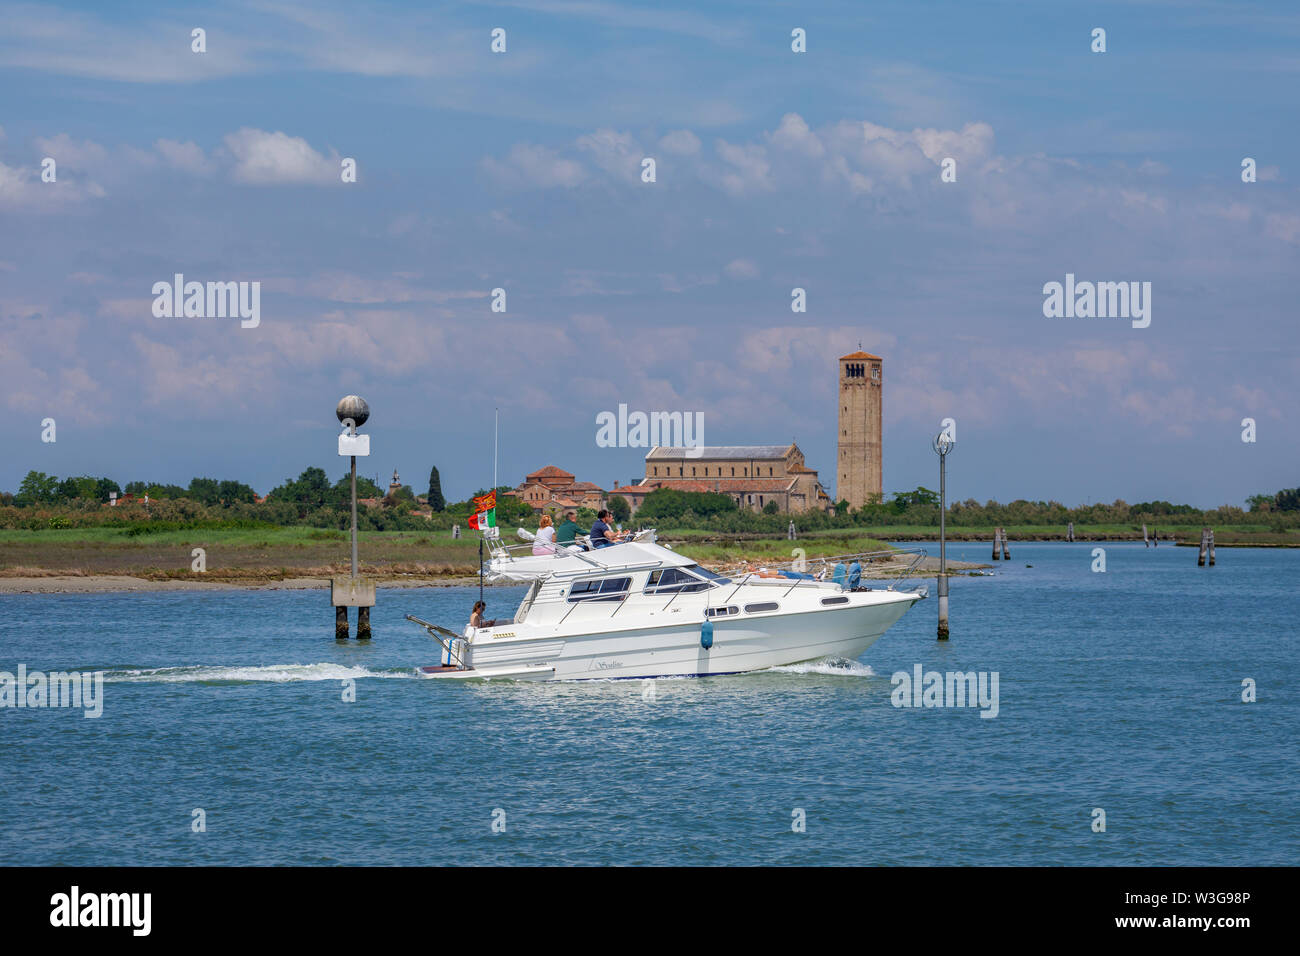 White speedboat speeding by Torcello, a small island in Venice Lagoon, Italy: view of Cathedral of Santa Maria Assunta, Santa Fosca and campanile - Stock Image